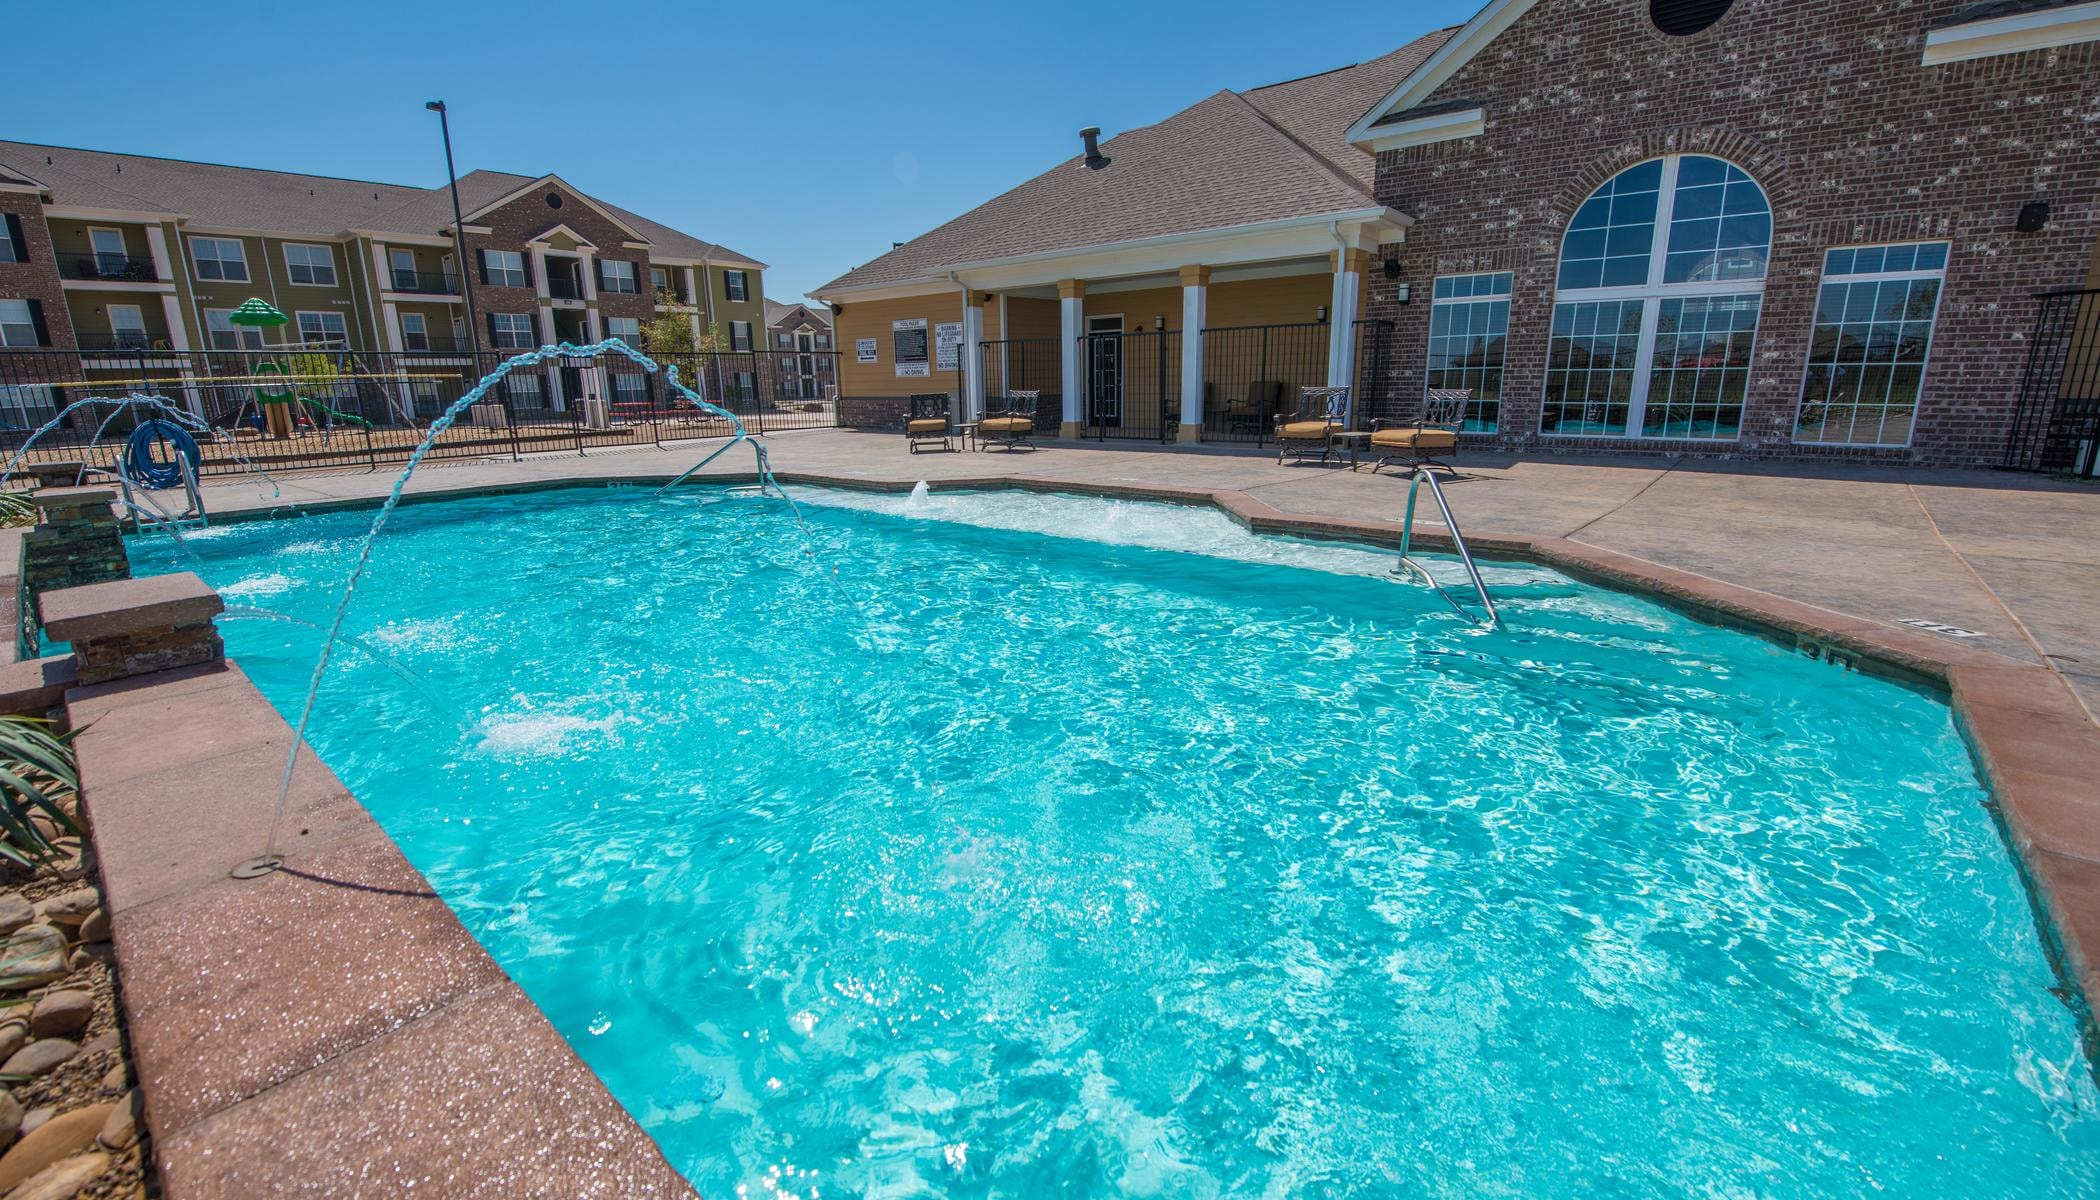 Unique swimming pool at apartments in Lubbock, Texas